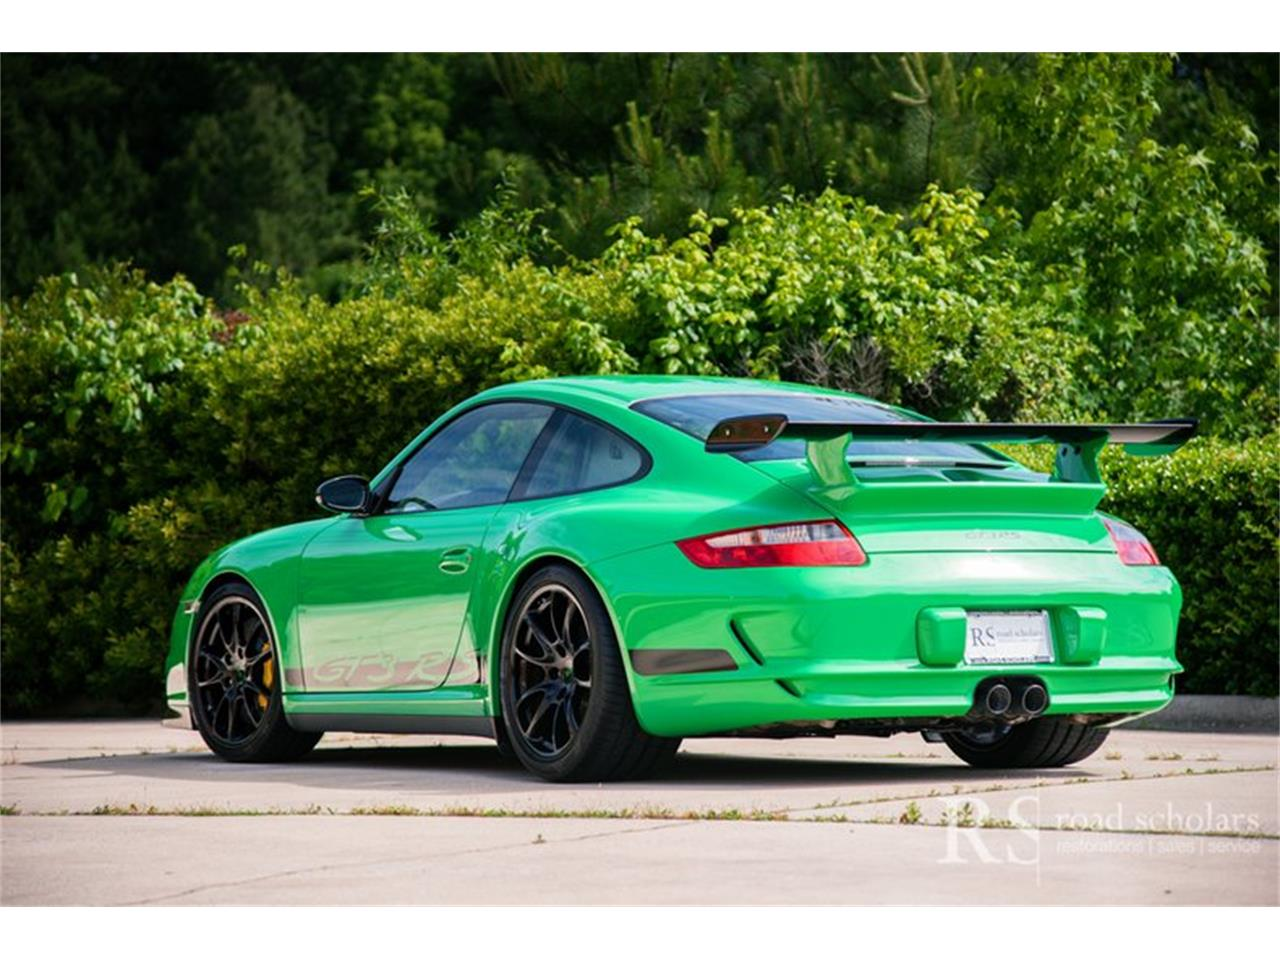 Large Picture of '07 Porsche 911 - $265,000.00 Offered by Road Scholars - QBH3